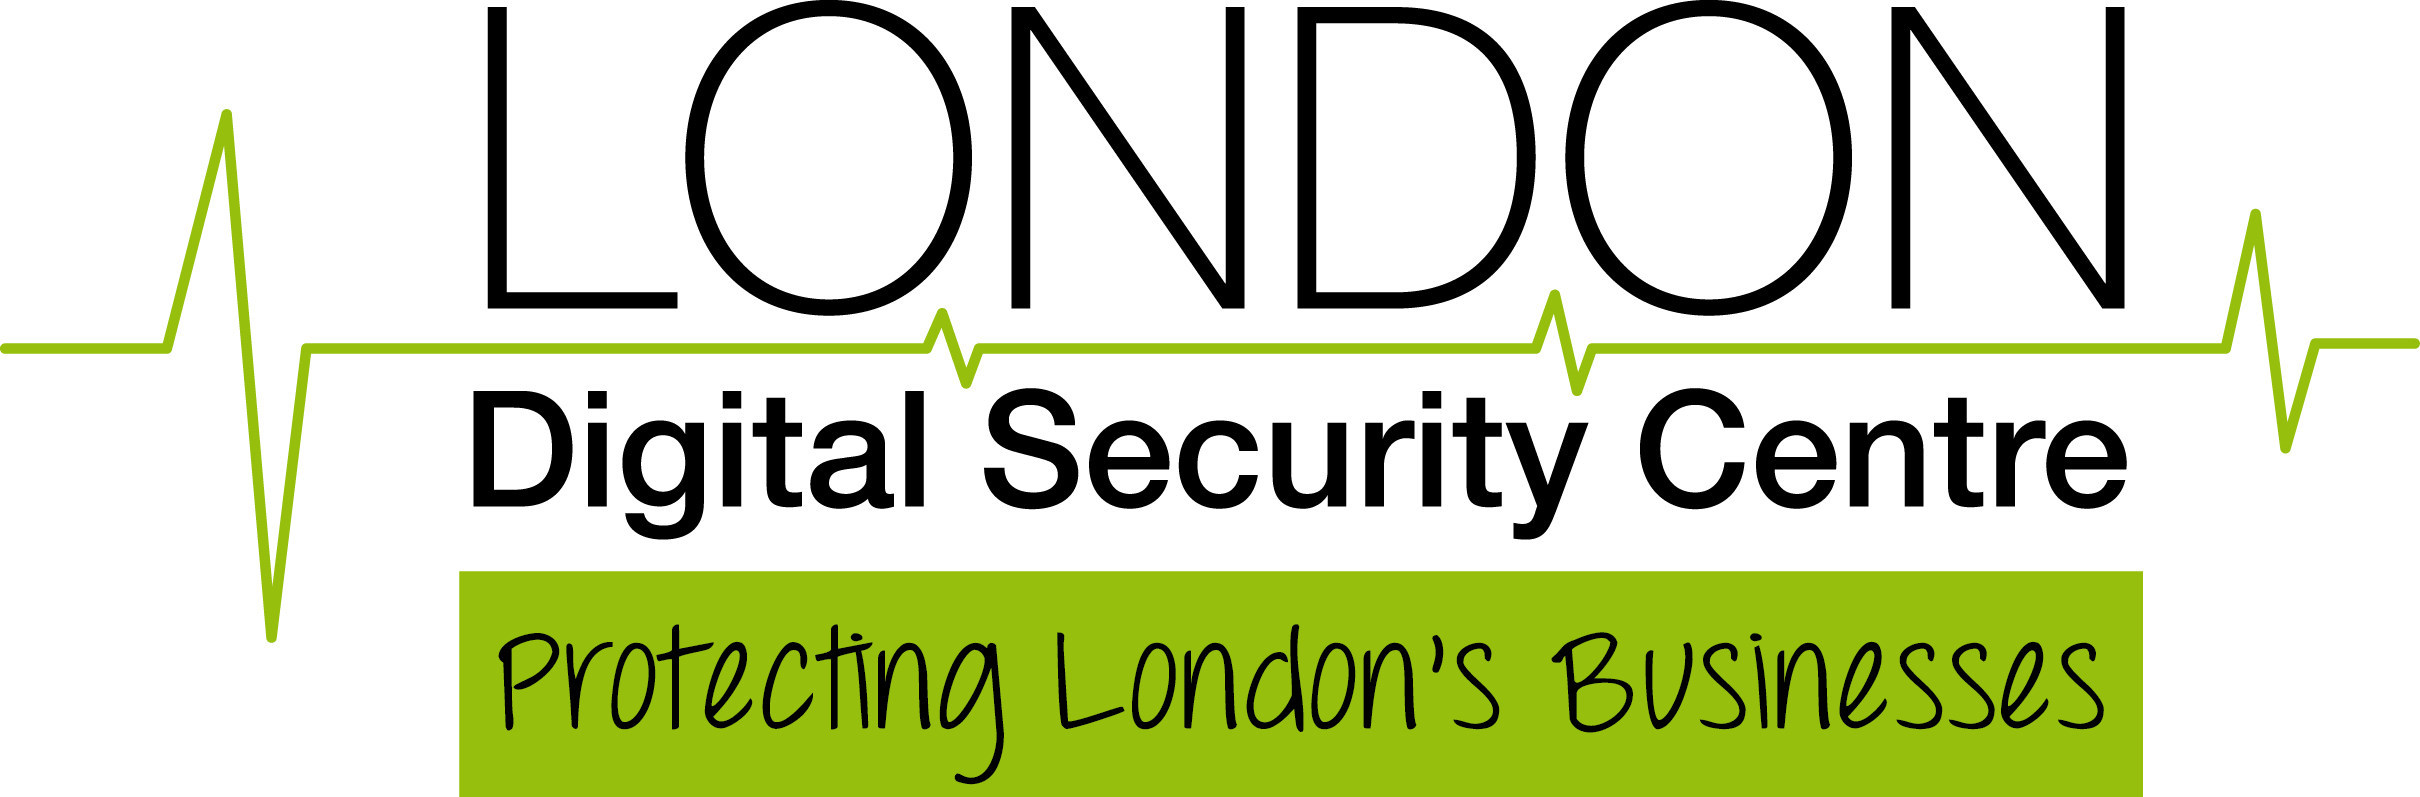 London Digital Security Centre Partners with